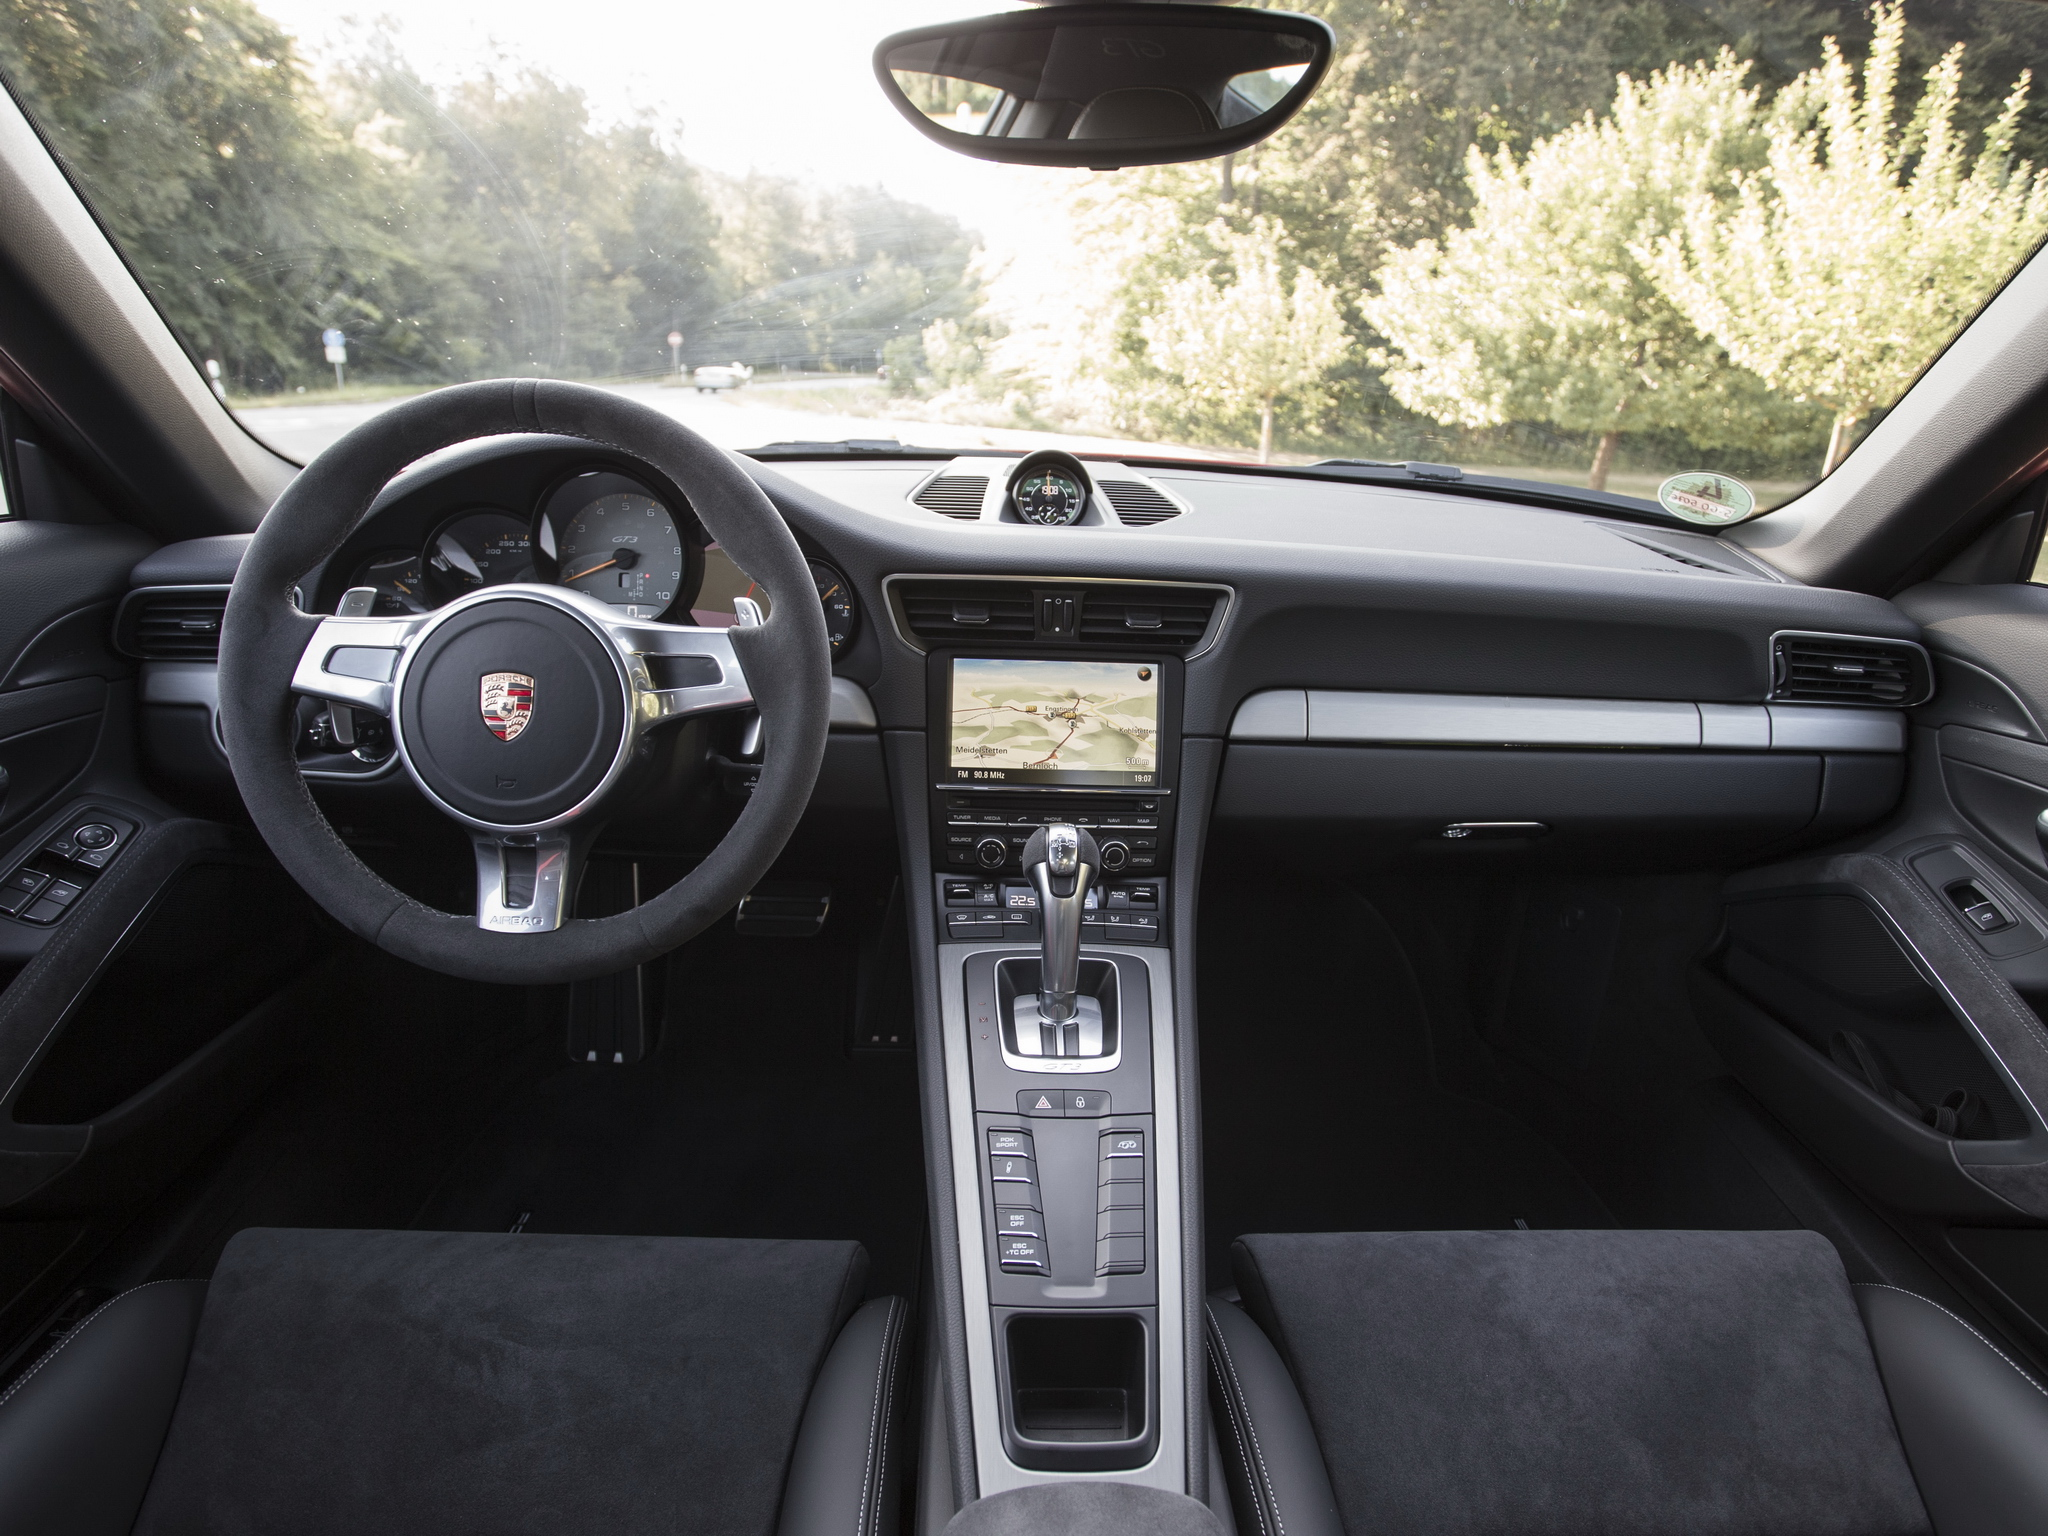 2014 porsche 911 gt3 991 supercar interior f wallpaper. Black Bedroom Furniture Sets. Home Design Ideas